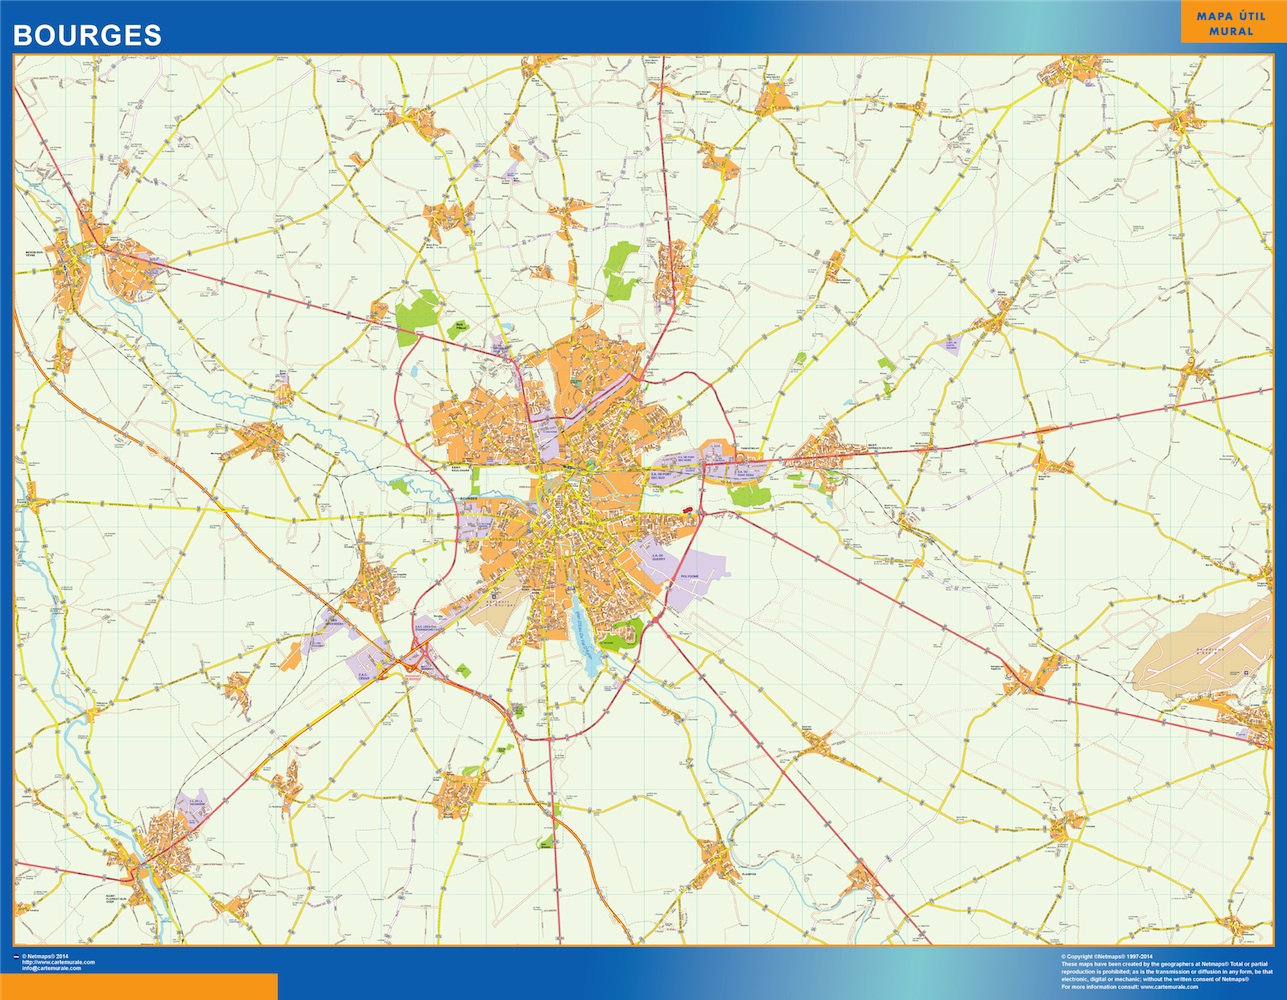 France City Maps The Wall Maps Wall Maps of the World Part 4